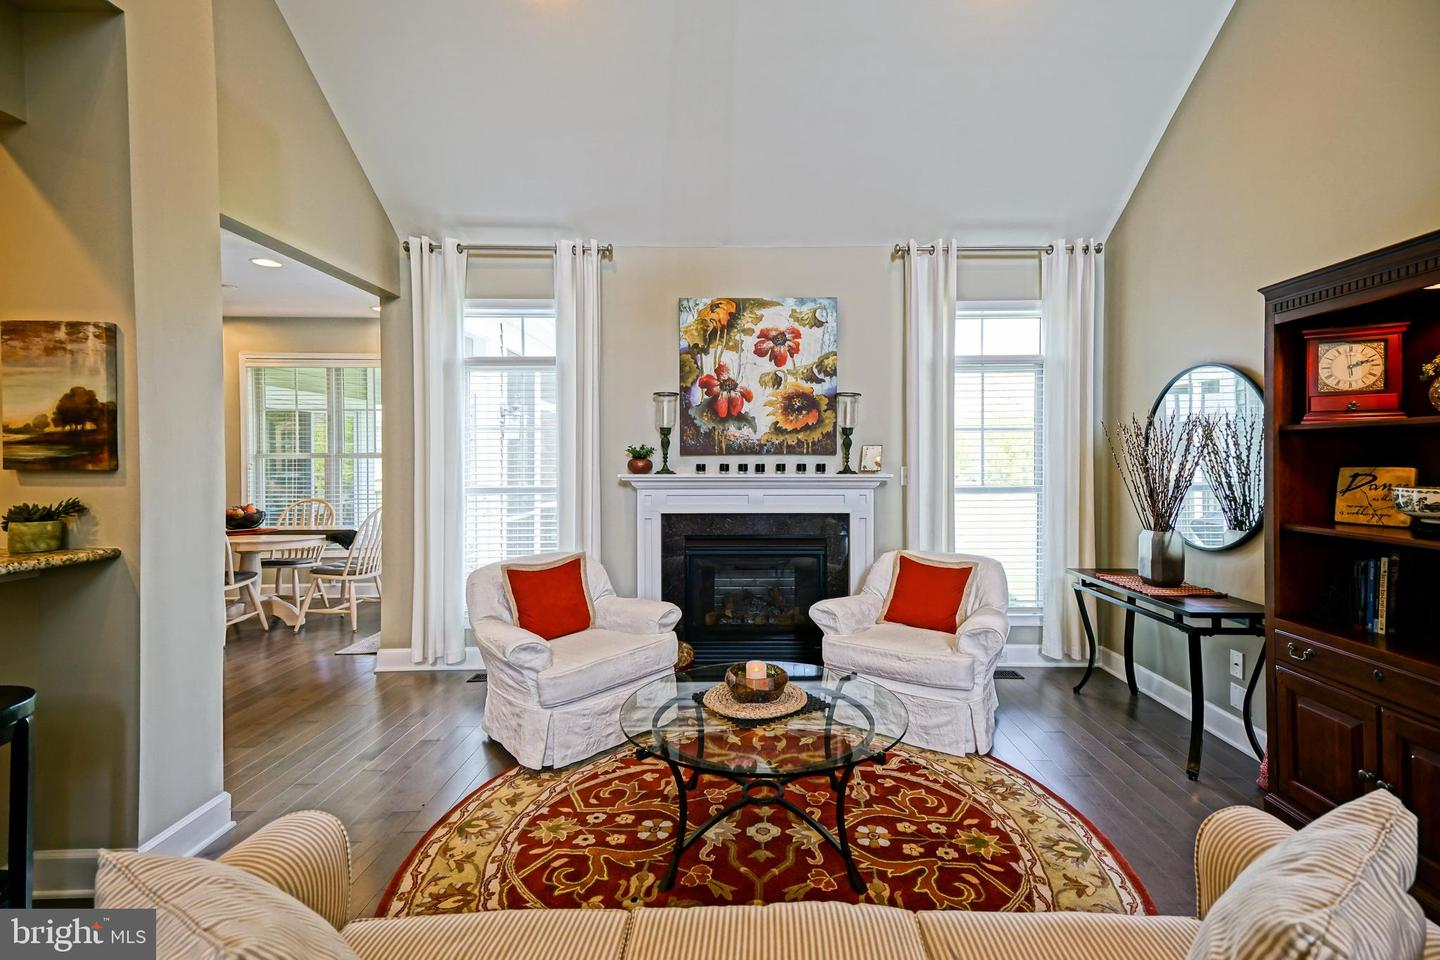 DESU139128-301667381019-2019-08-05-10-43-56 35222 Overfalls Dr N | Lewes, DE Real Estate For Sale | MLS# Desu139128  - Lee Ann Group